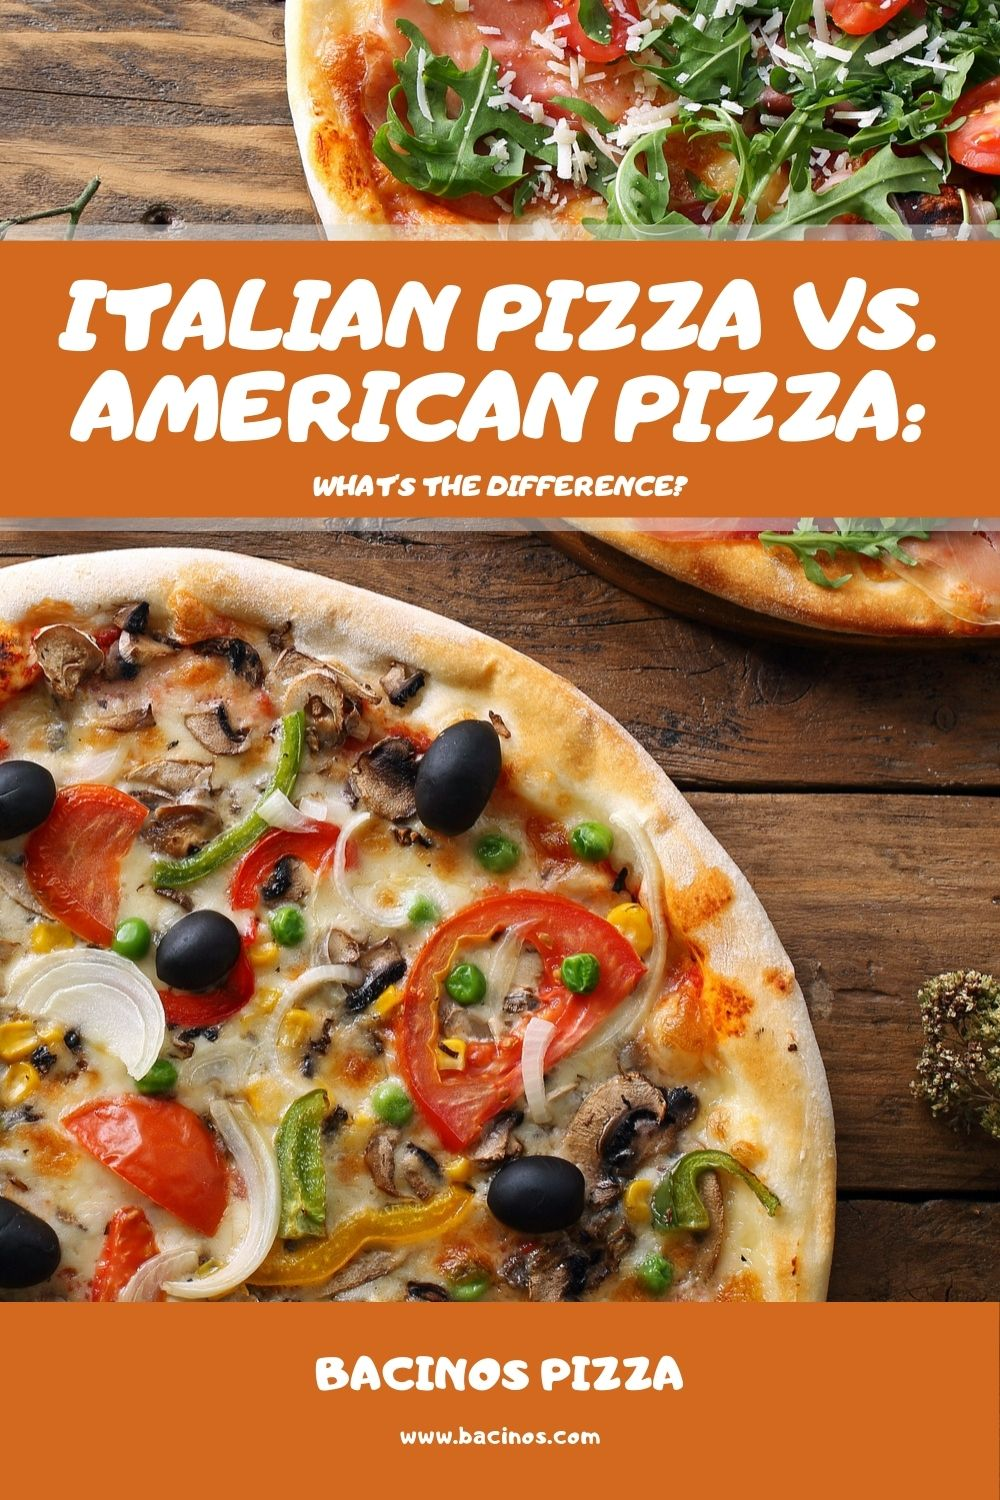 Italian Pizza vs. American Pizza What's the Difference 2